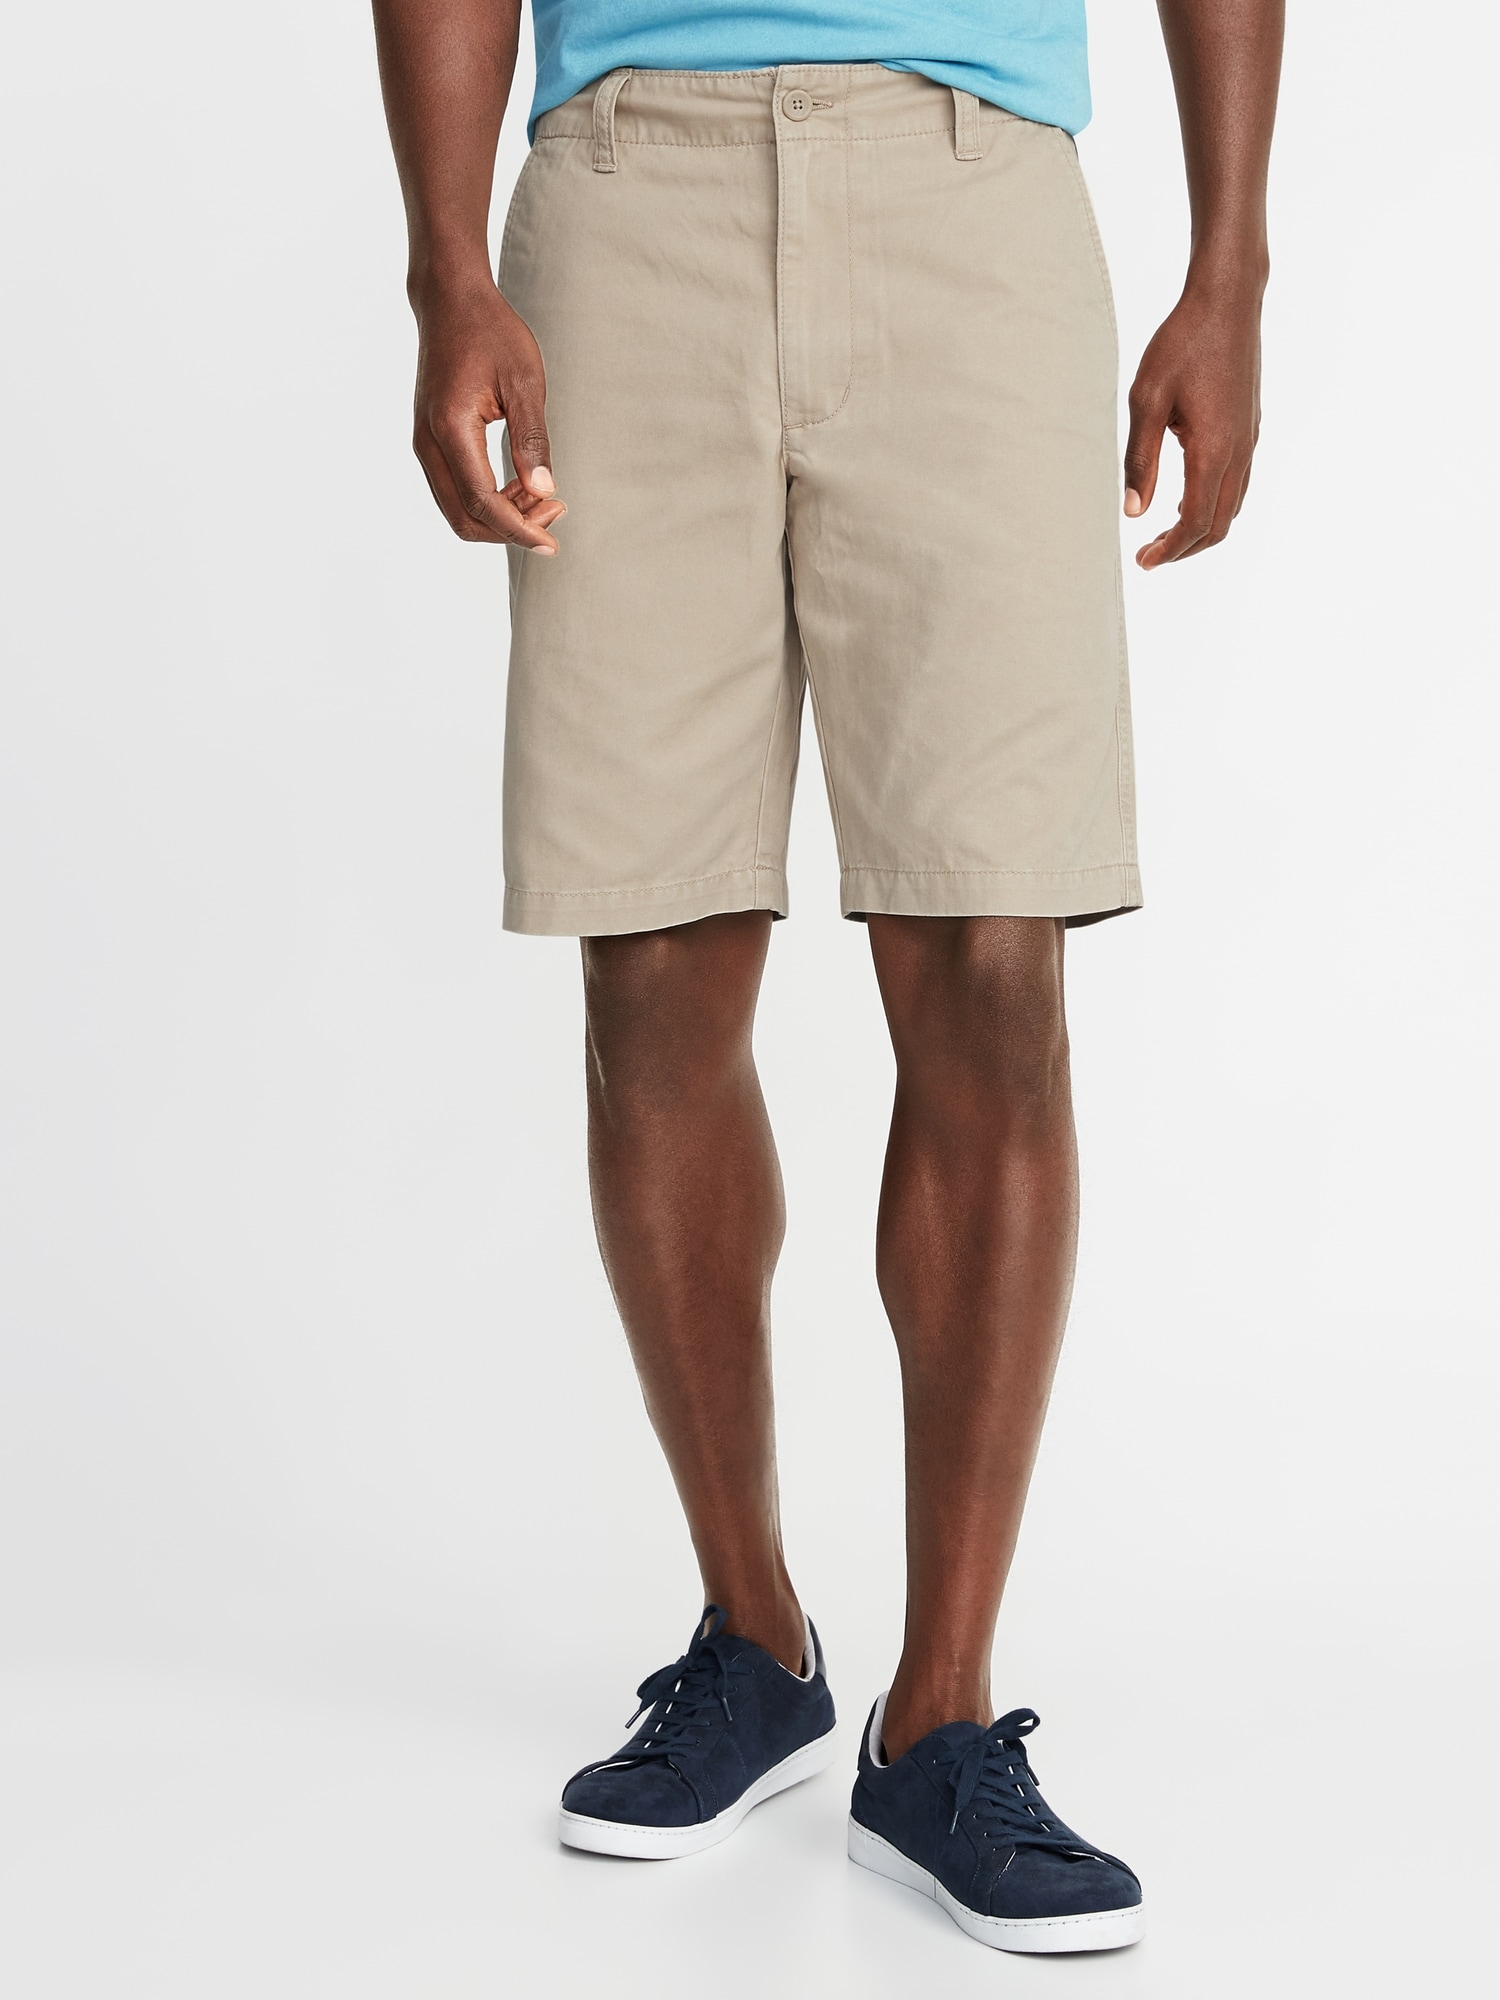 5285bb9d86 Straight Lived-In Khaki Shorts for Men - 10-inch inseam | Old Navy